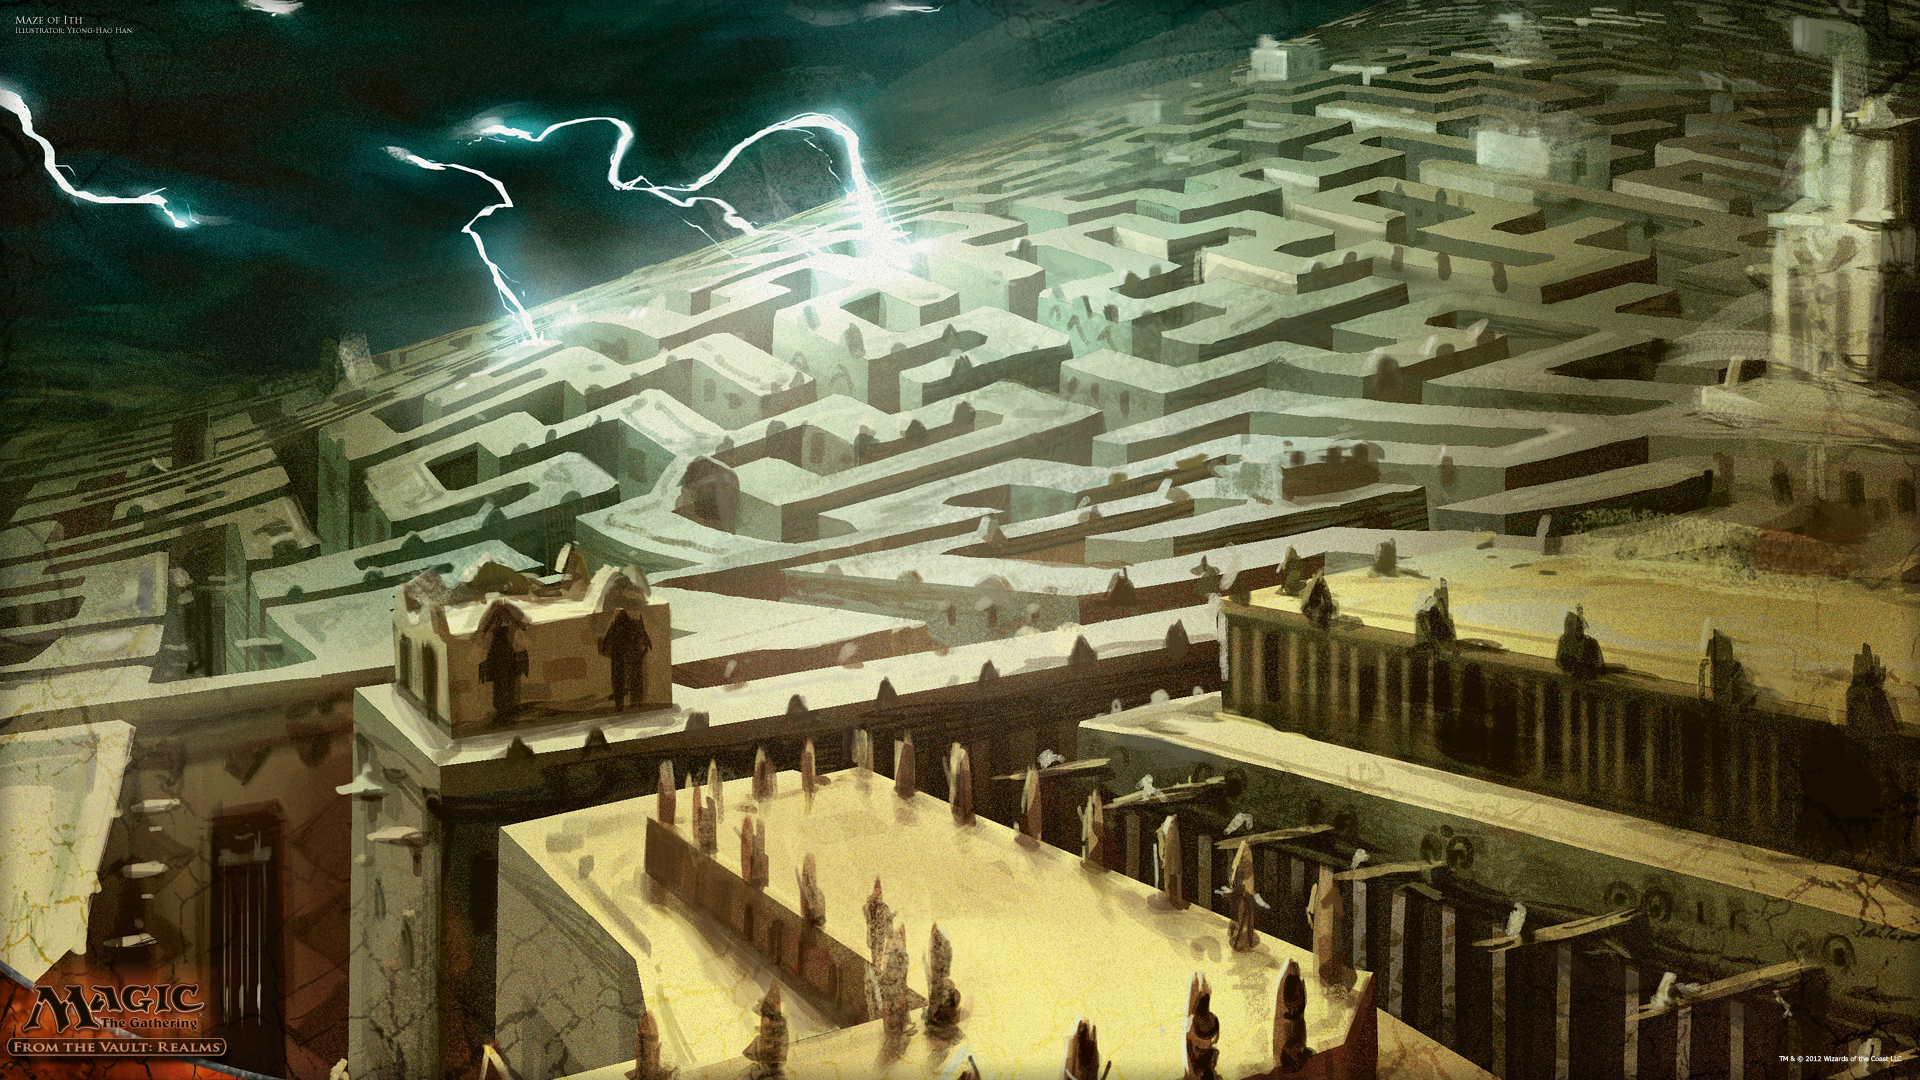 London Iphone X Wallpaper Wallpaper Of The Week Maze Of Ith Magic The Gathering